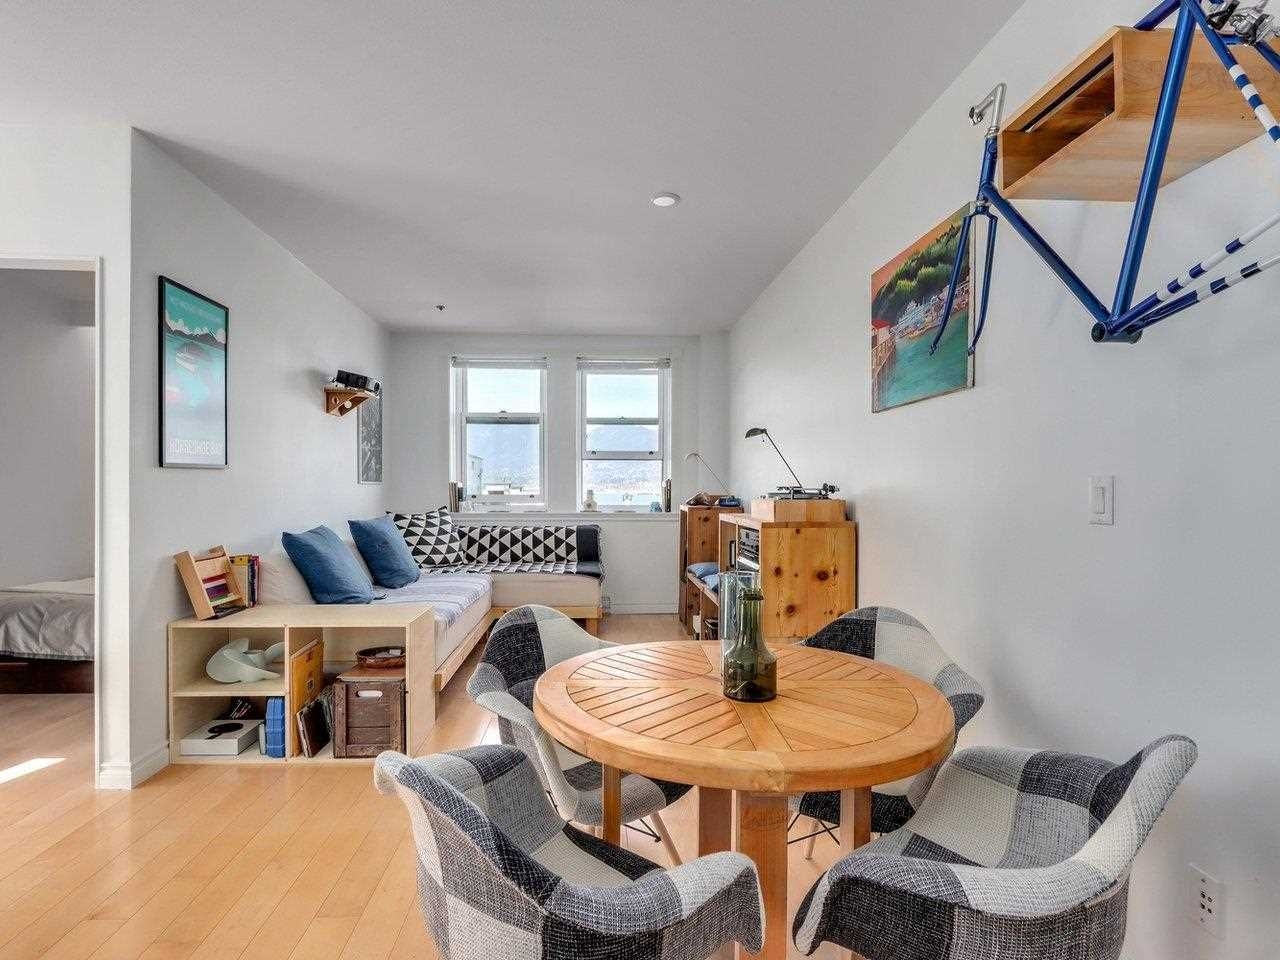 """Main Photo: 701 233 ABBOTT Street in Vancouver: Downtown VW Condo for sale in """"Abbott Place"""" (Vancouver West)  : MLS®# R2578437"""